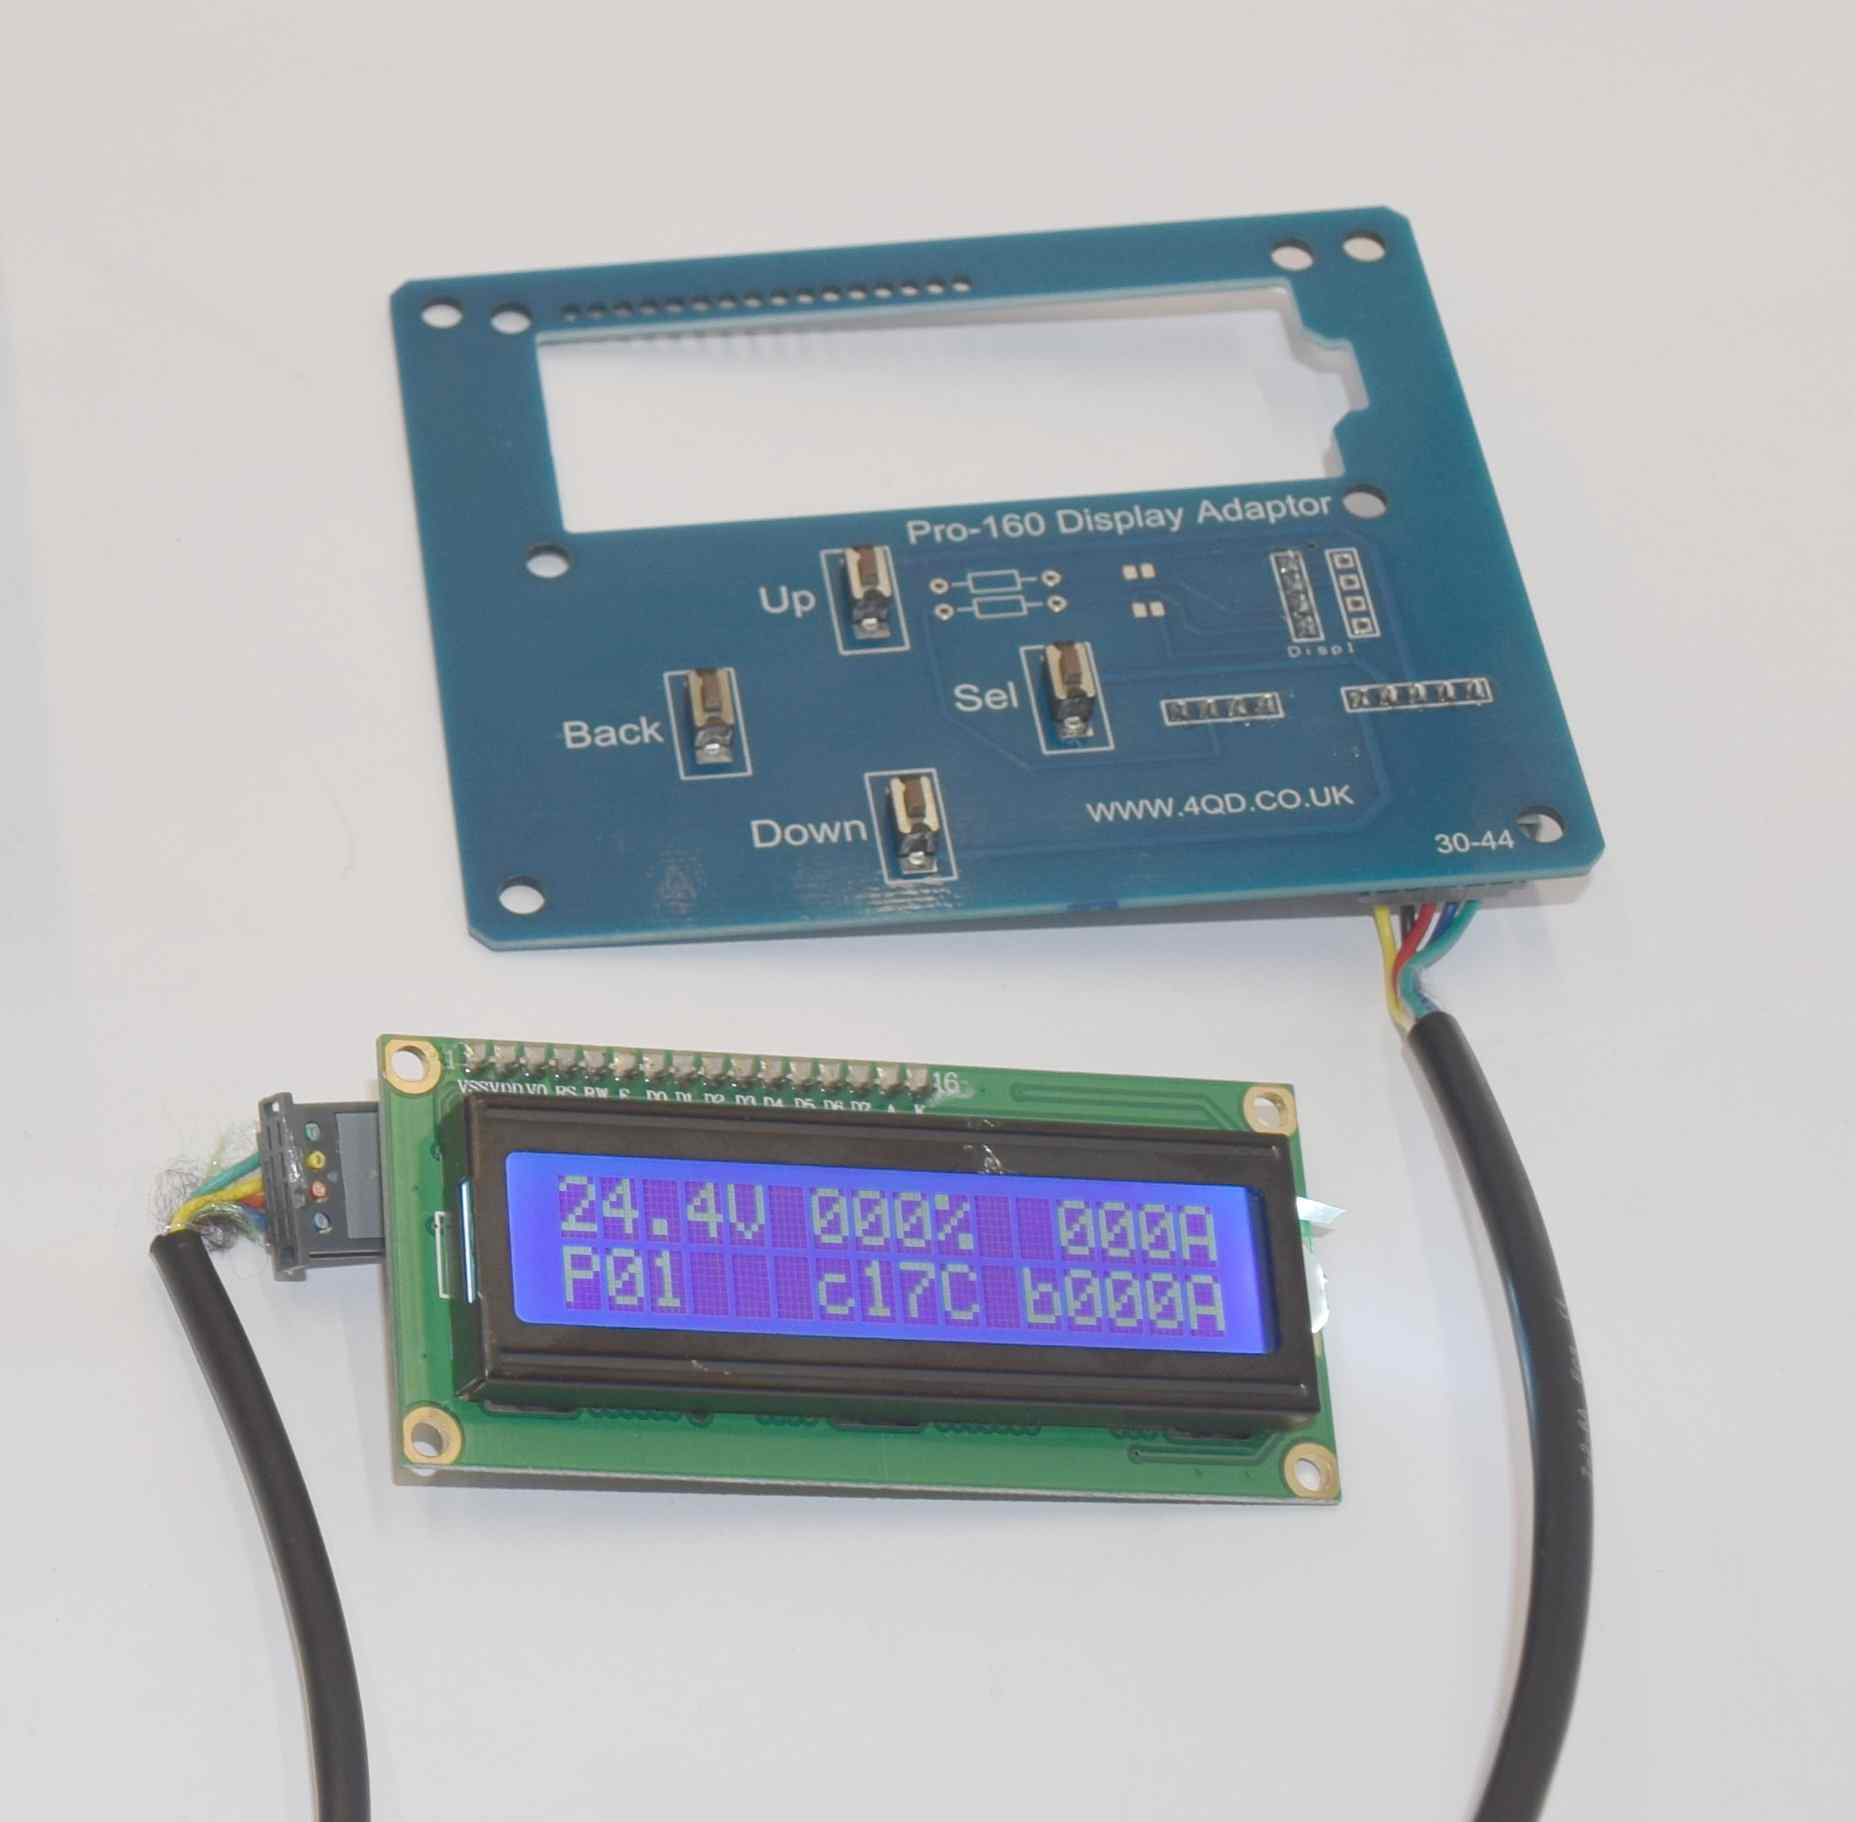 Pro-160 display adaptor board and seperate display